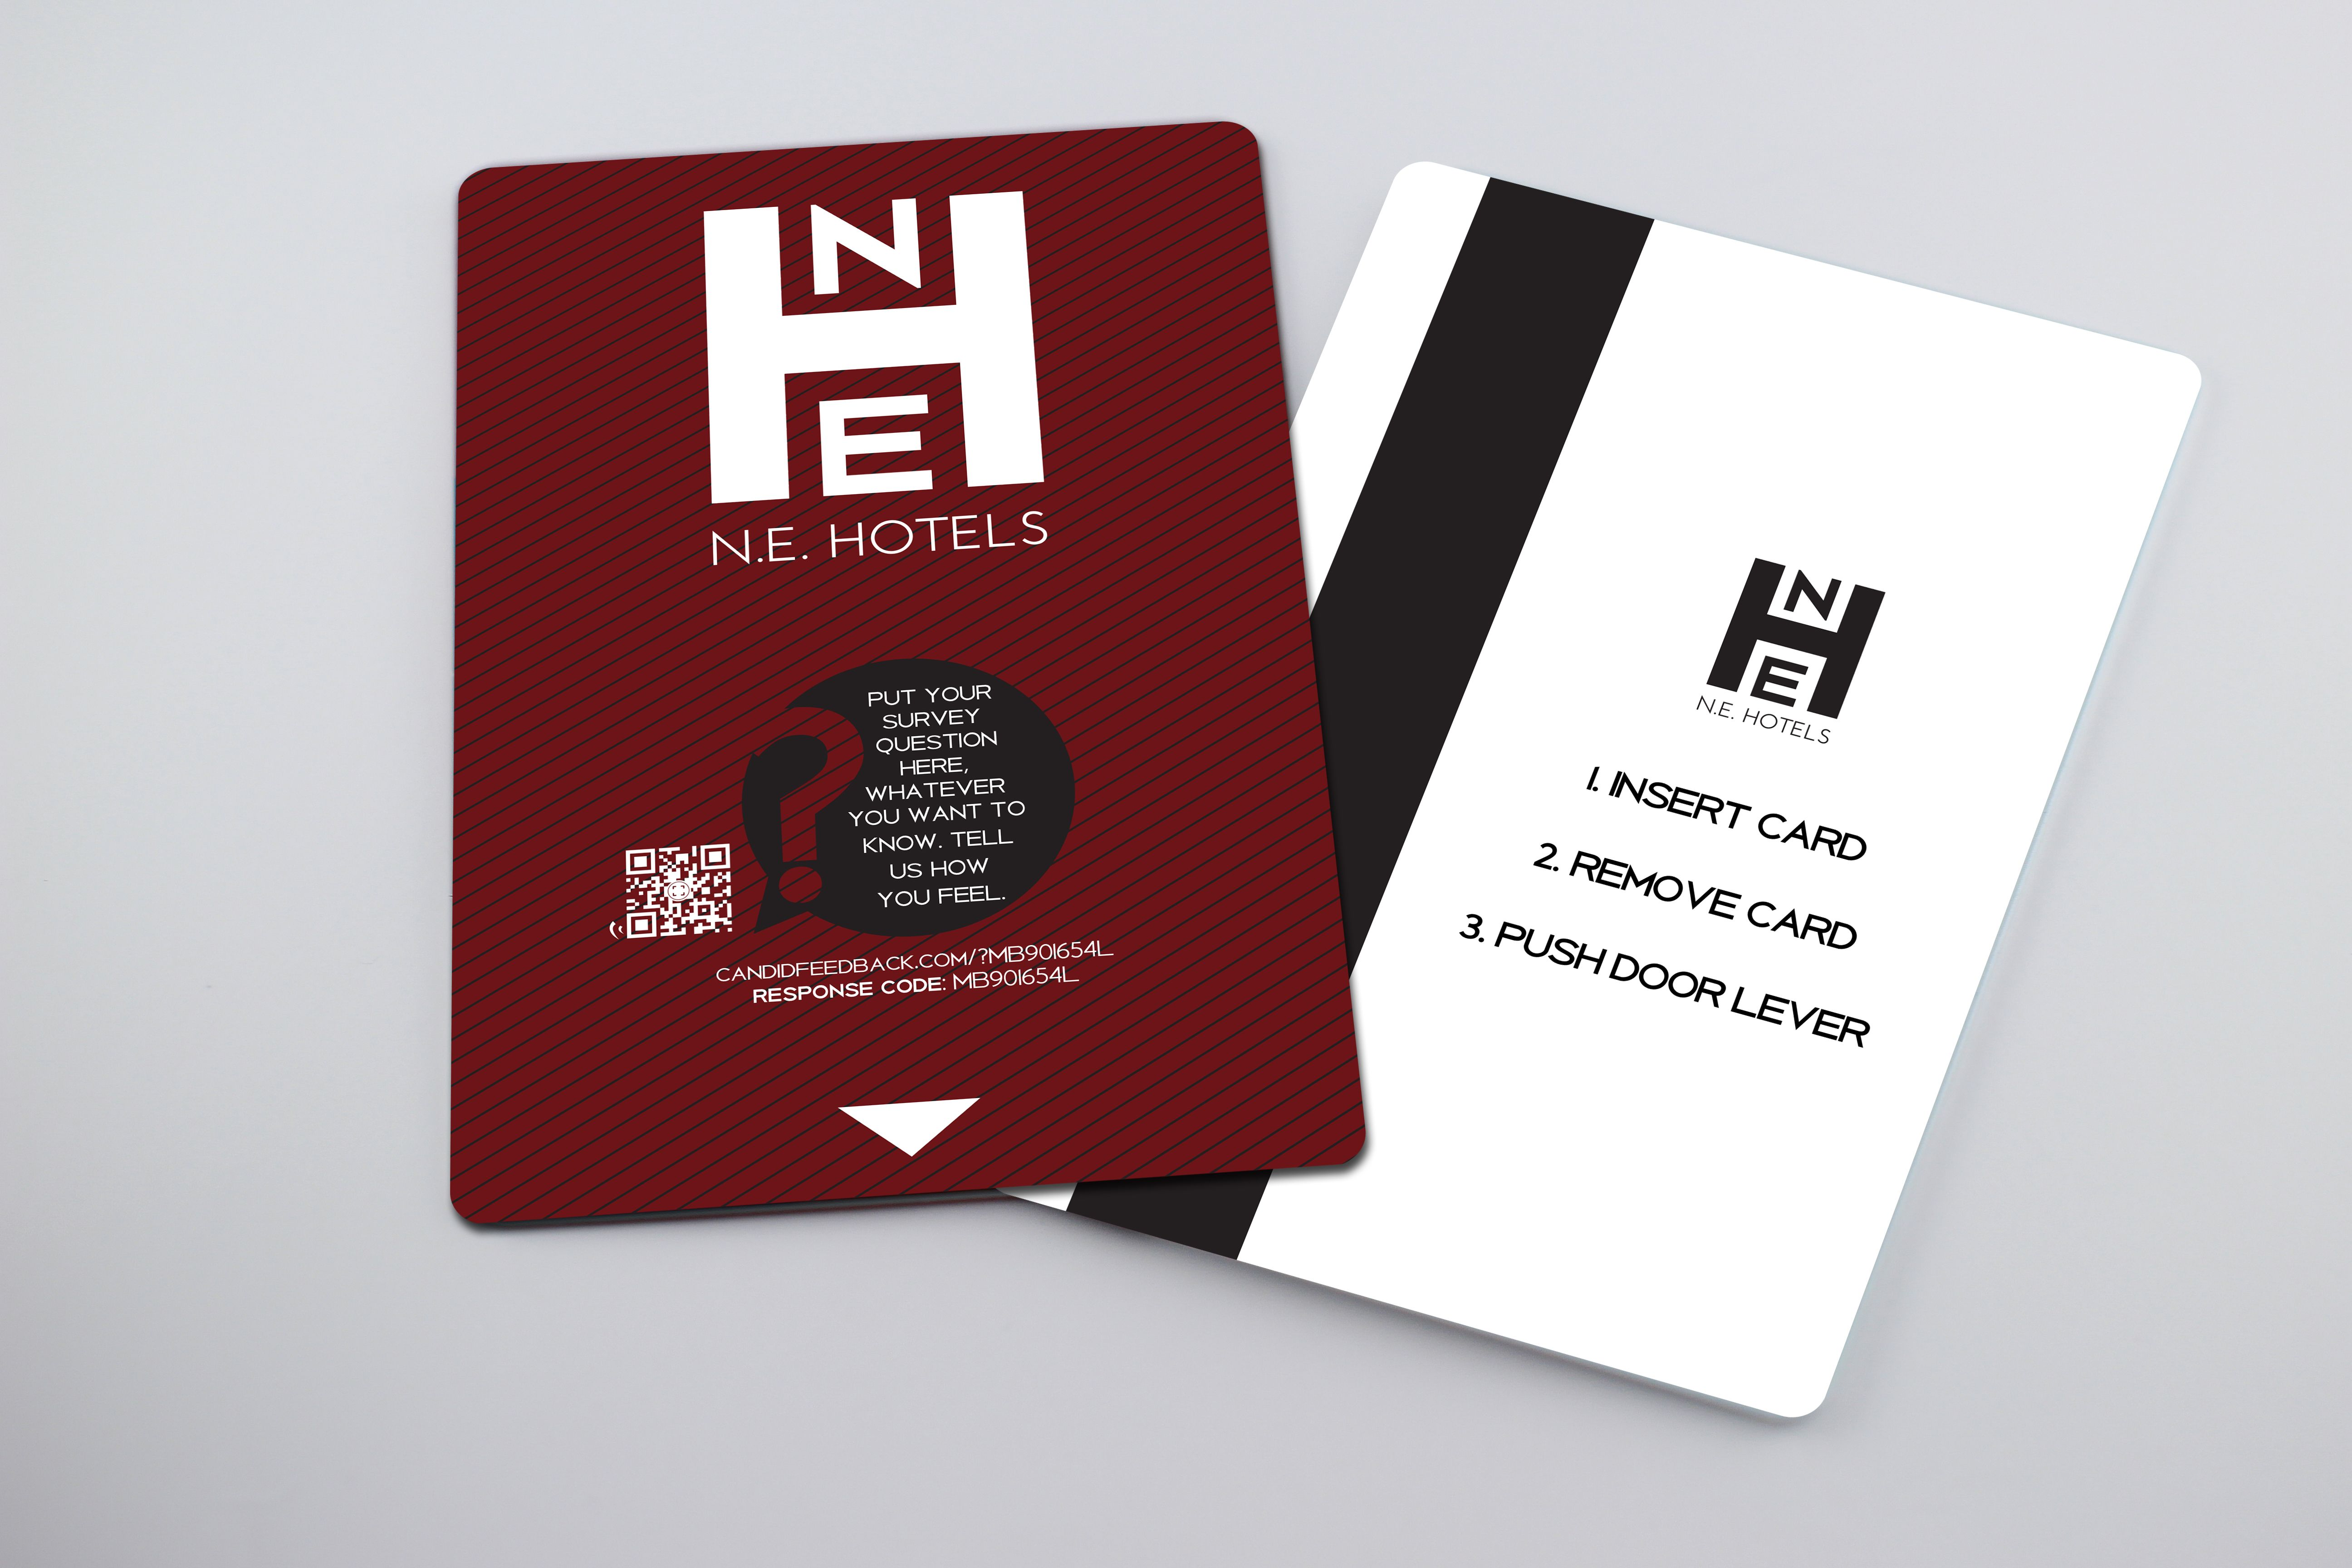 Photorealistic Mobile Feedback Hotel Key Card Design Mockup . CANDIDCup . http://candidcup.com